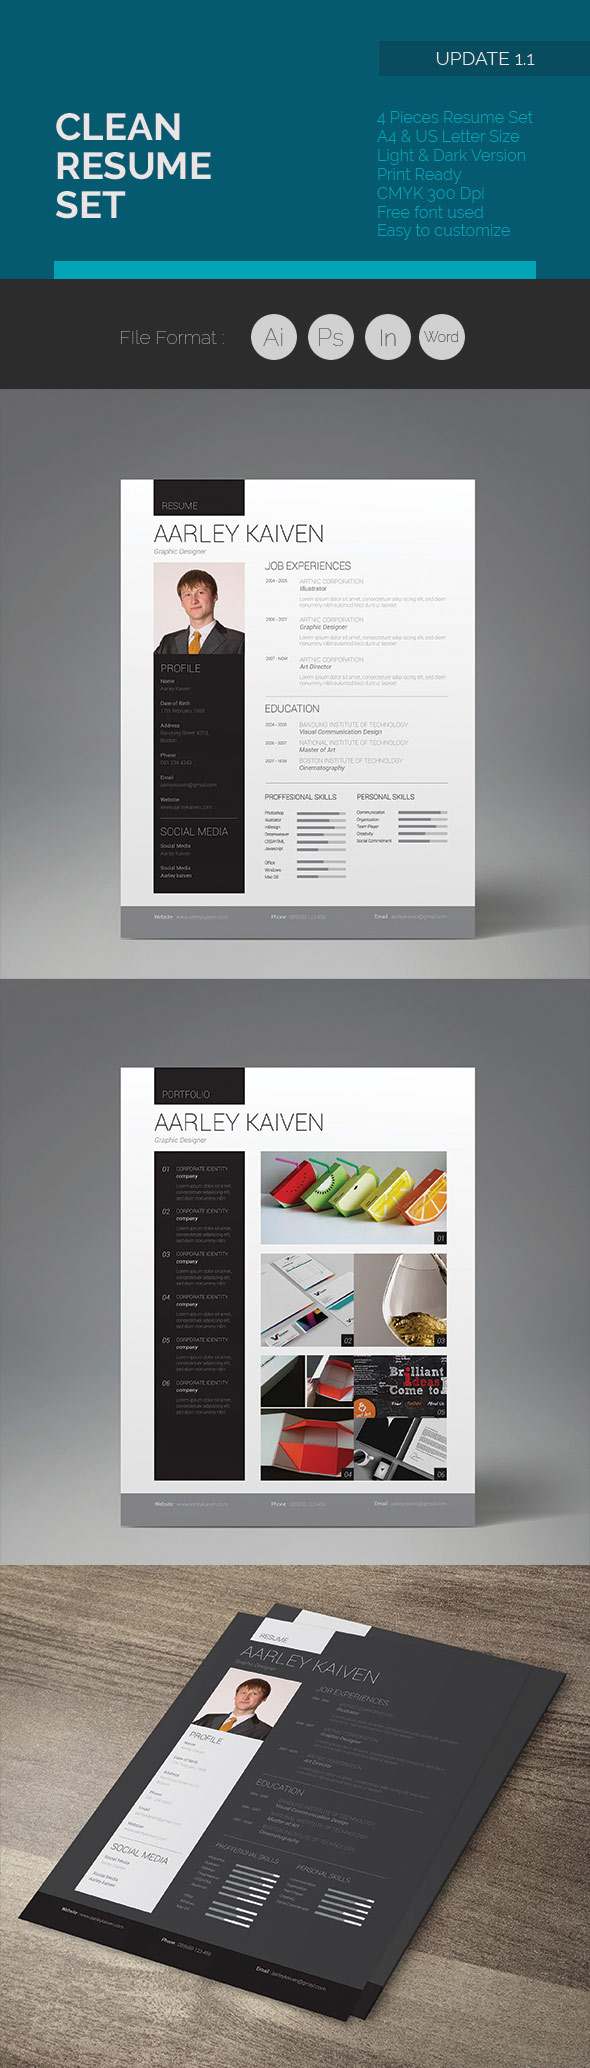 25 Creative Resume Templates  To Land a New Job in Style Pro Design Clean Resume Set